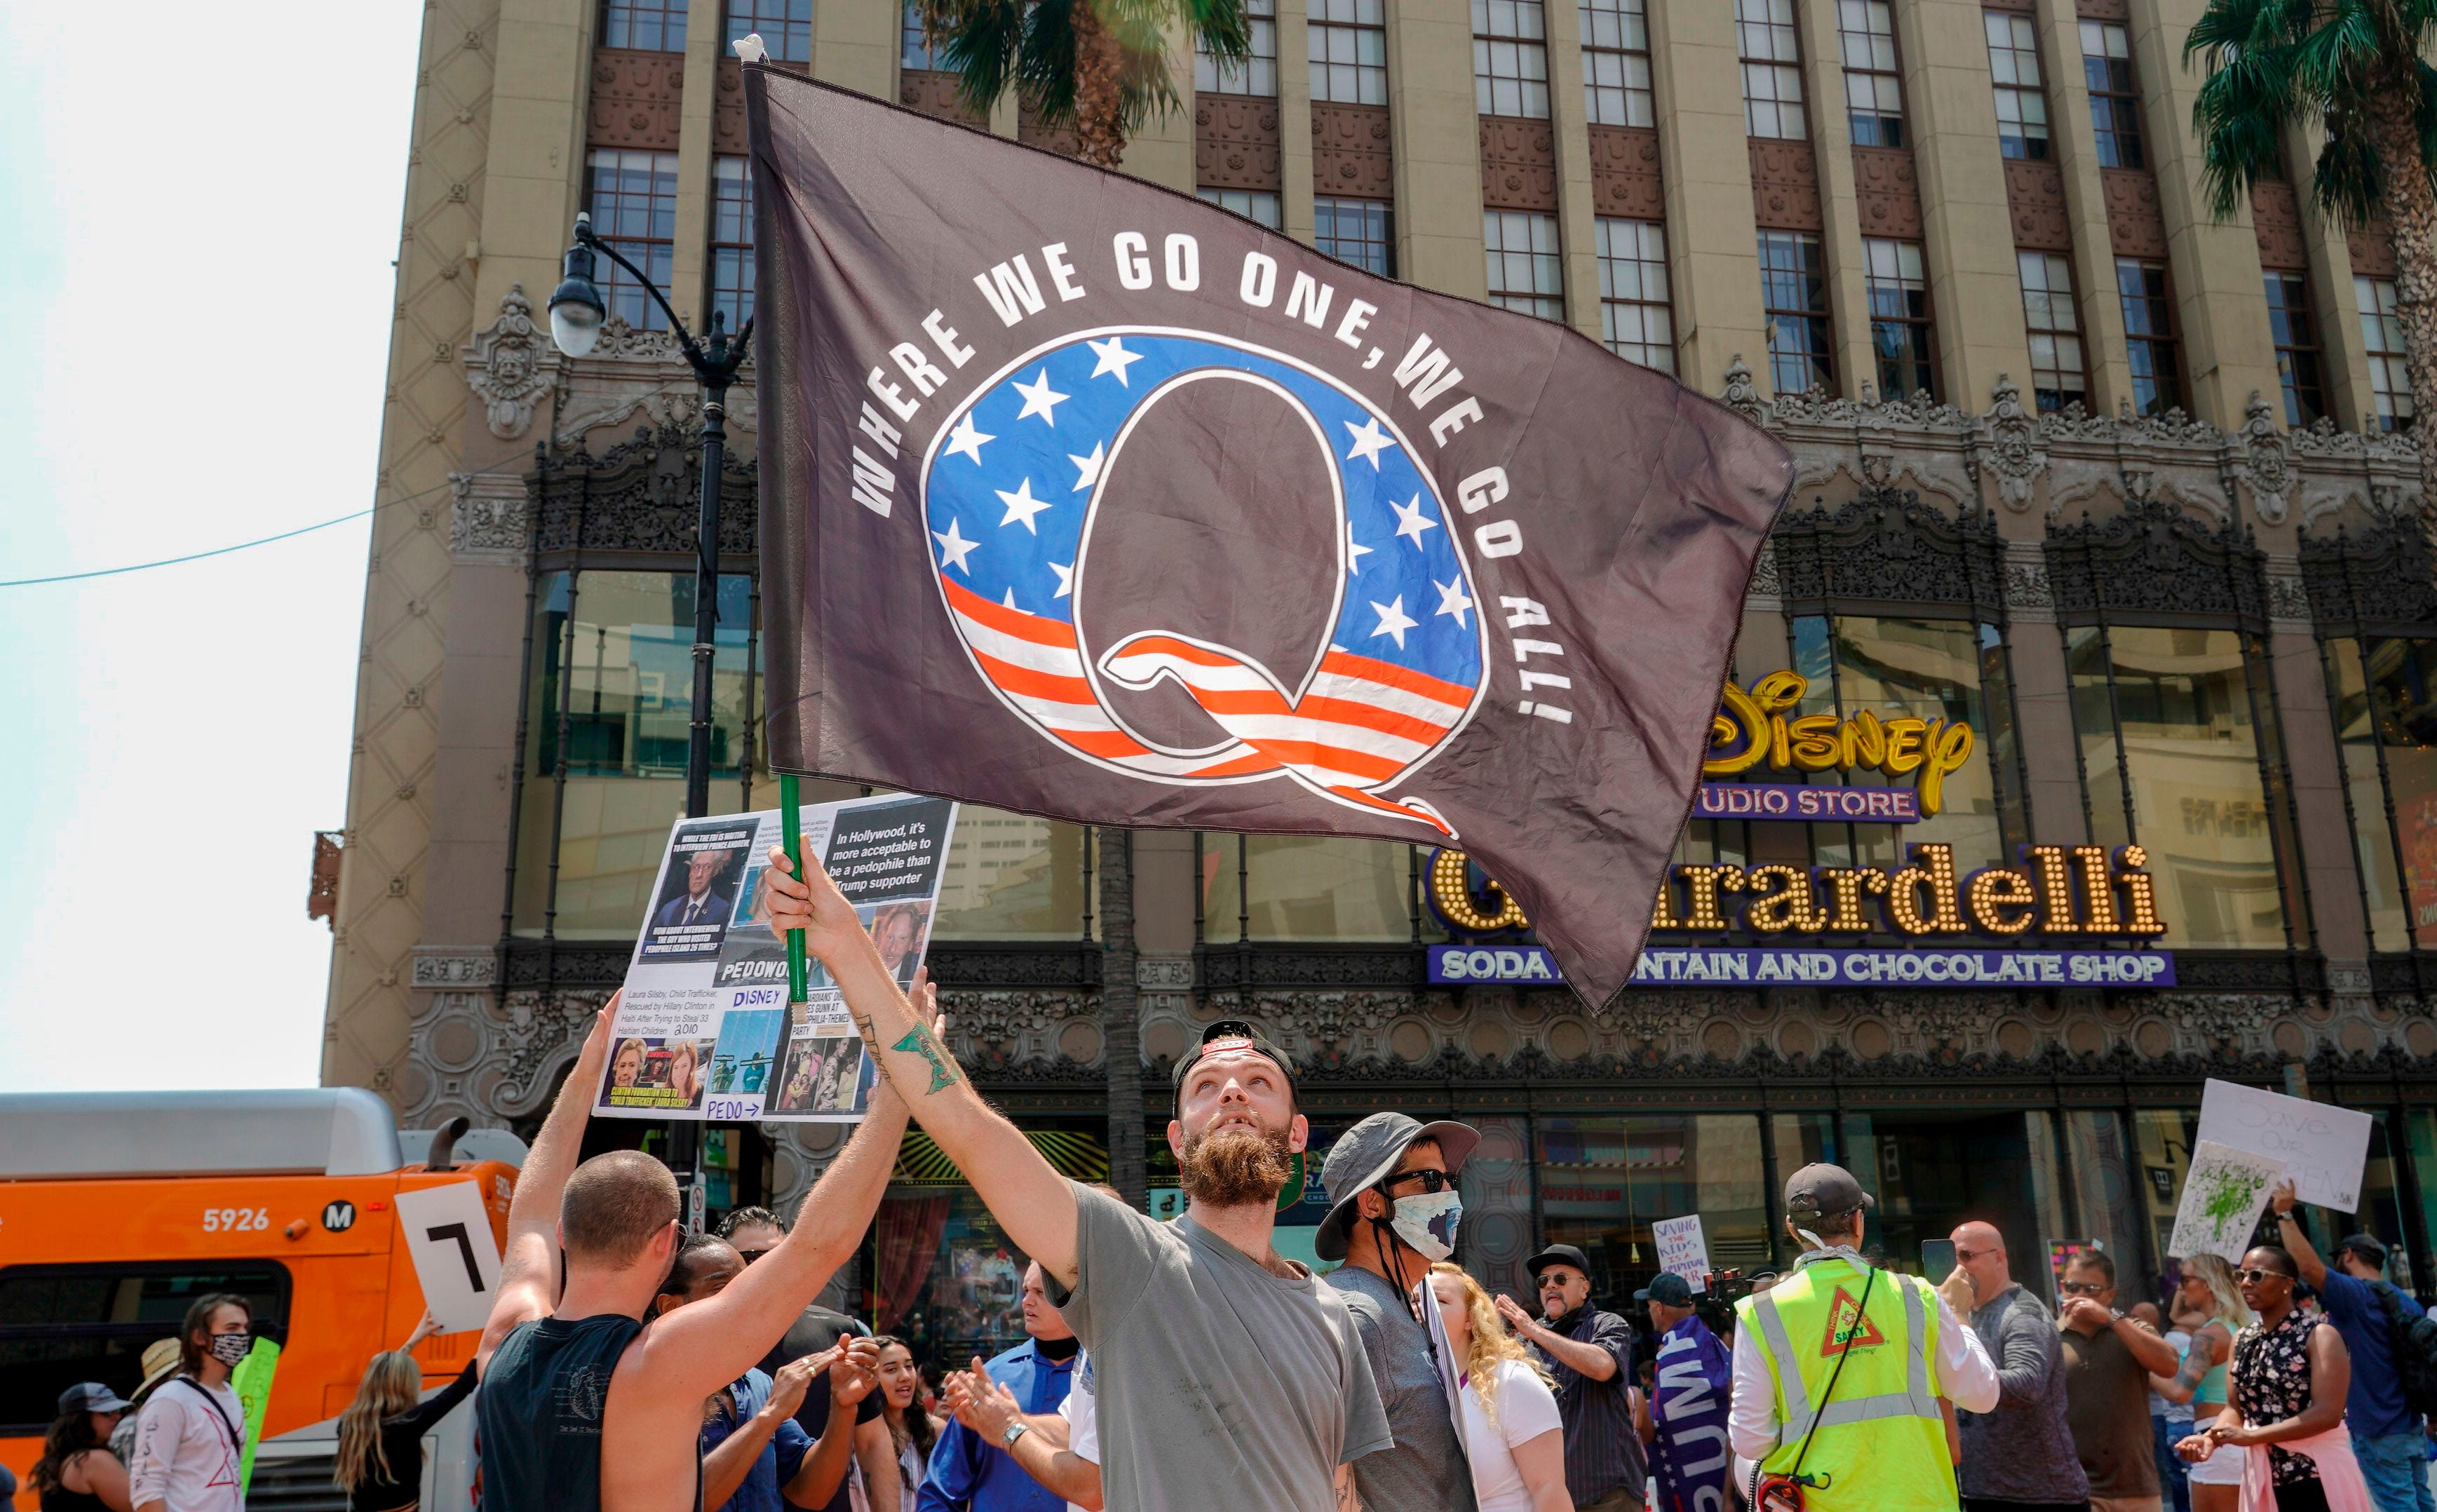 QAnon demonstrators protest on Hollywood Boulevard in Los Angeles Aug. 22.  A 2019 bulletin from the FBI warned that conspiracy-theory-driven extremists are a domestic terrorism threat.